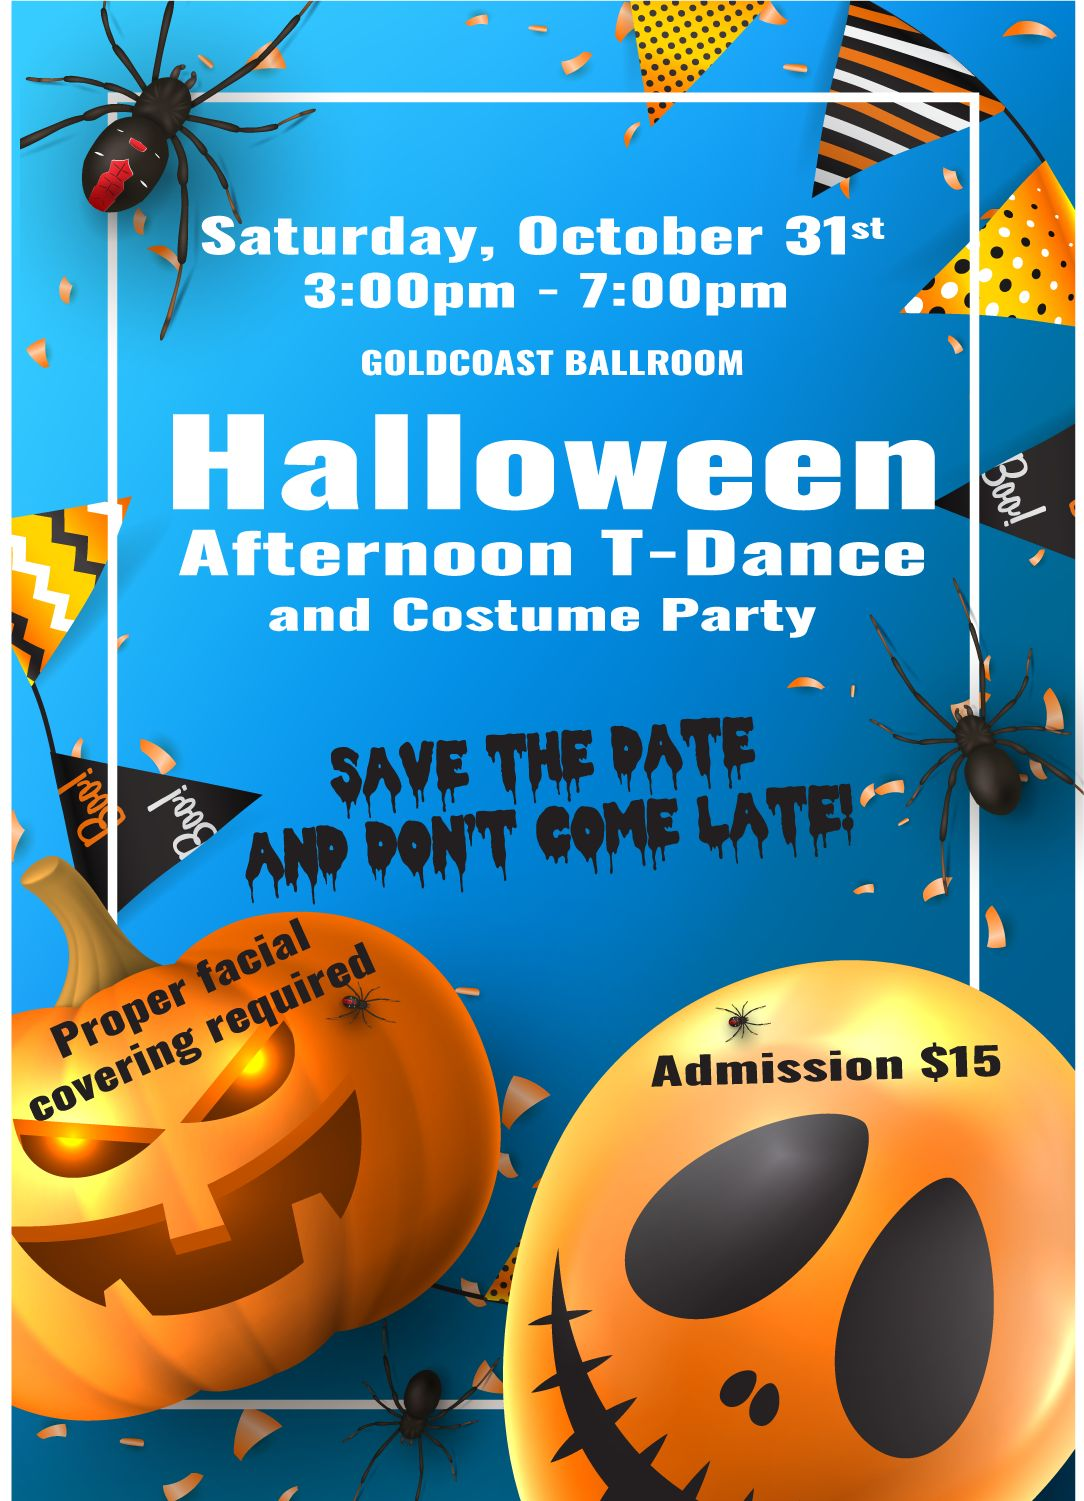 Halloween Afternoon T-Dance & Costume Party - 3-7 PM - October 31, 2020